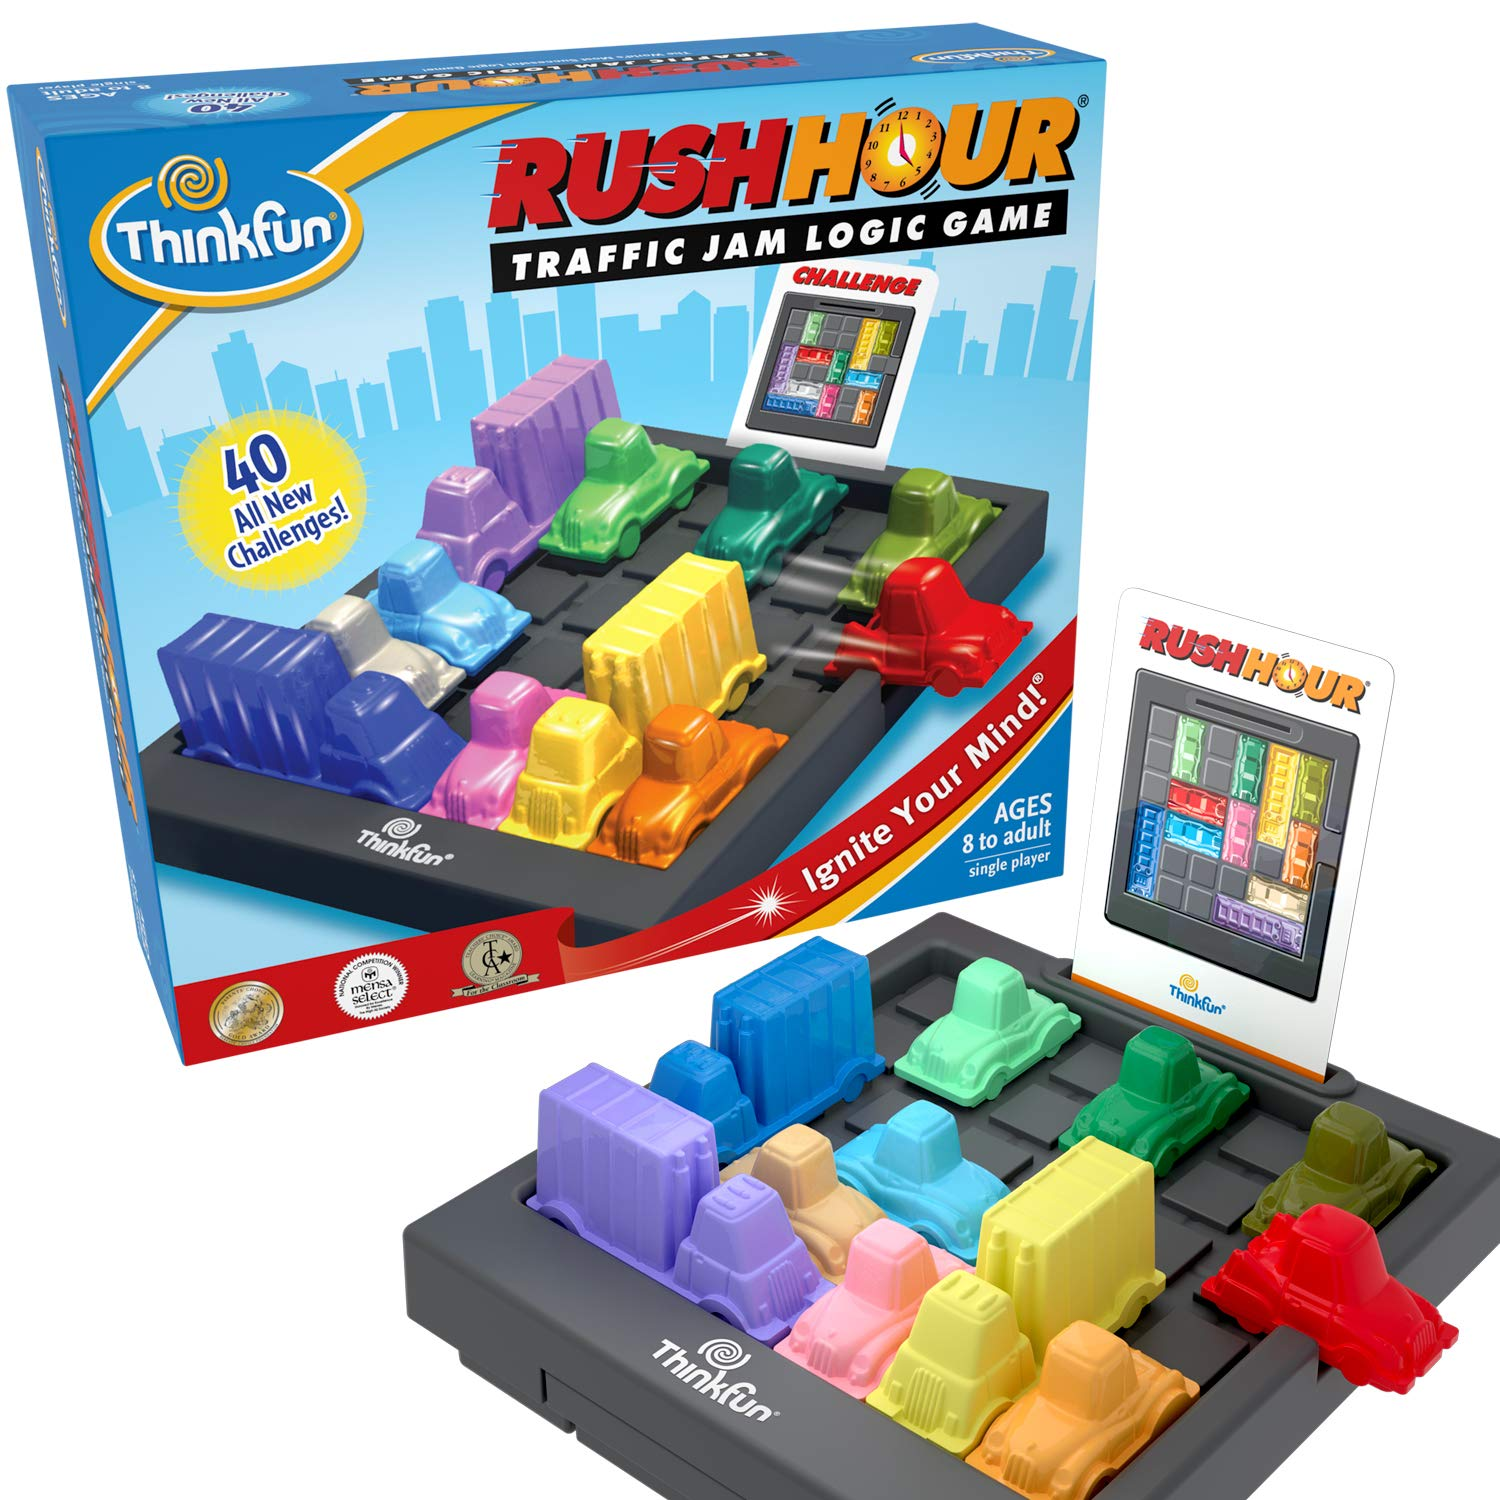 B00000DMER Rush Hour Traffic Jam Logic Game and STEM Toy for Boys and Girls Age 8 and Up - Tons of Fun with Over 20 Awards Won, International for Over 20 Years 71mkJQlqyOL